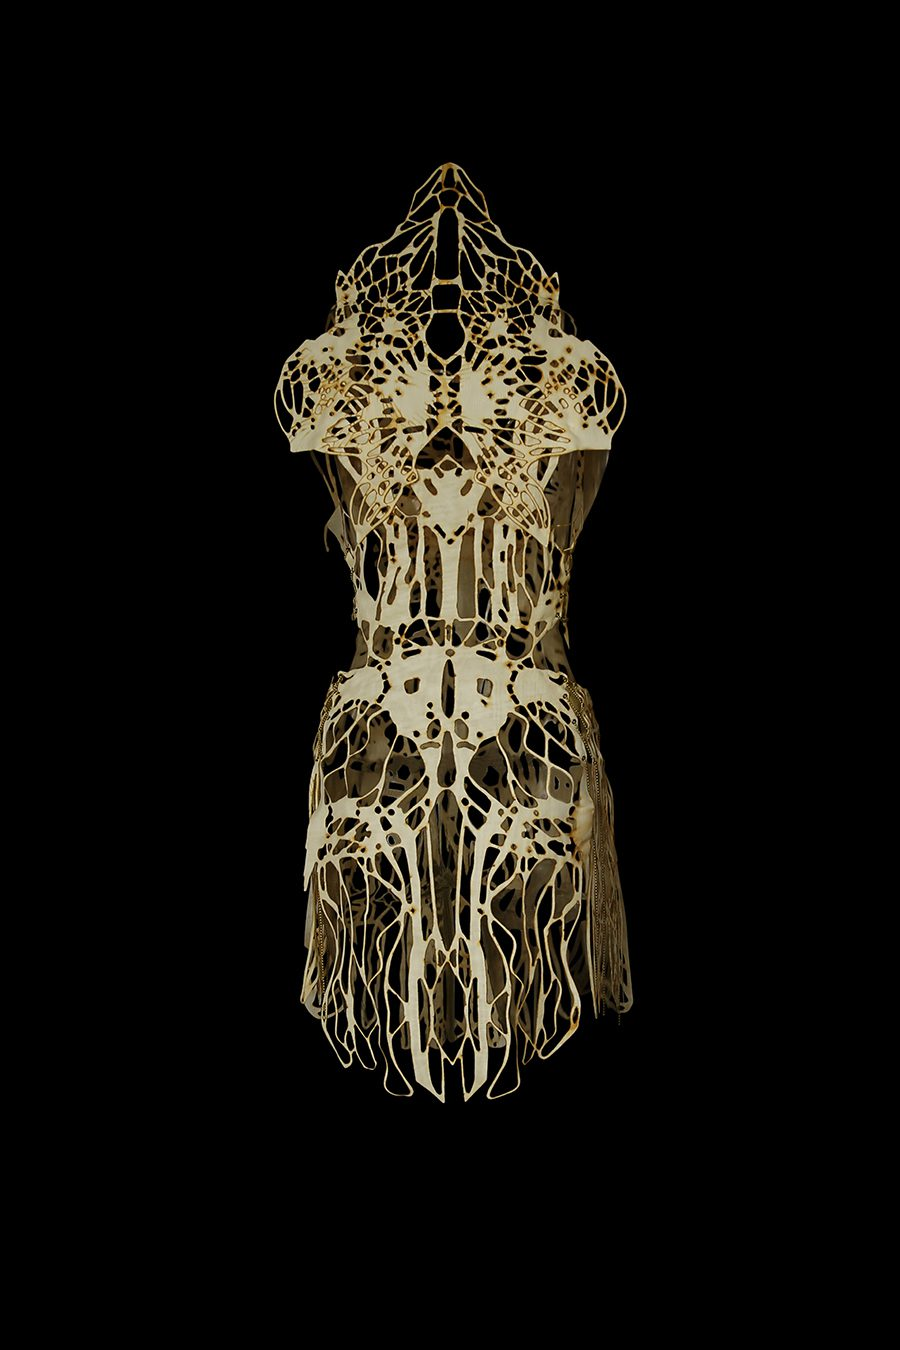 2017-Amy-Karle-Internal-Collection-cream-garment-based-on-tendons-and-ligaments-v1-02